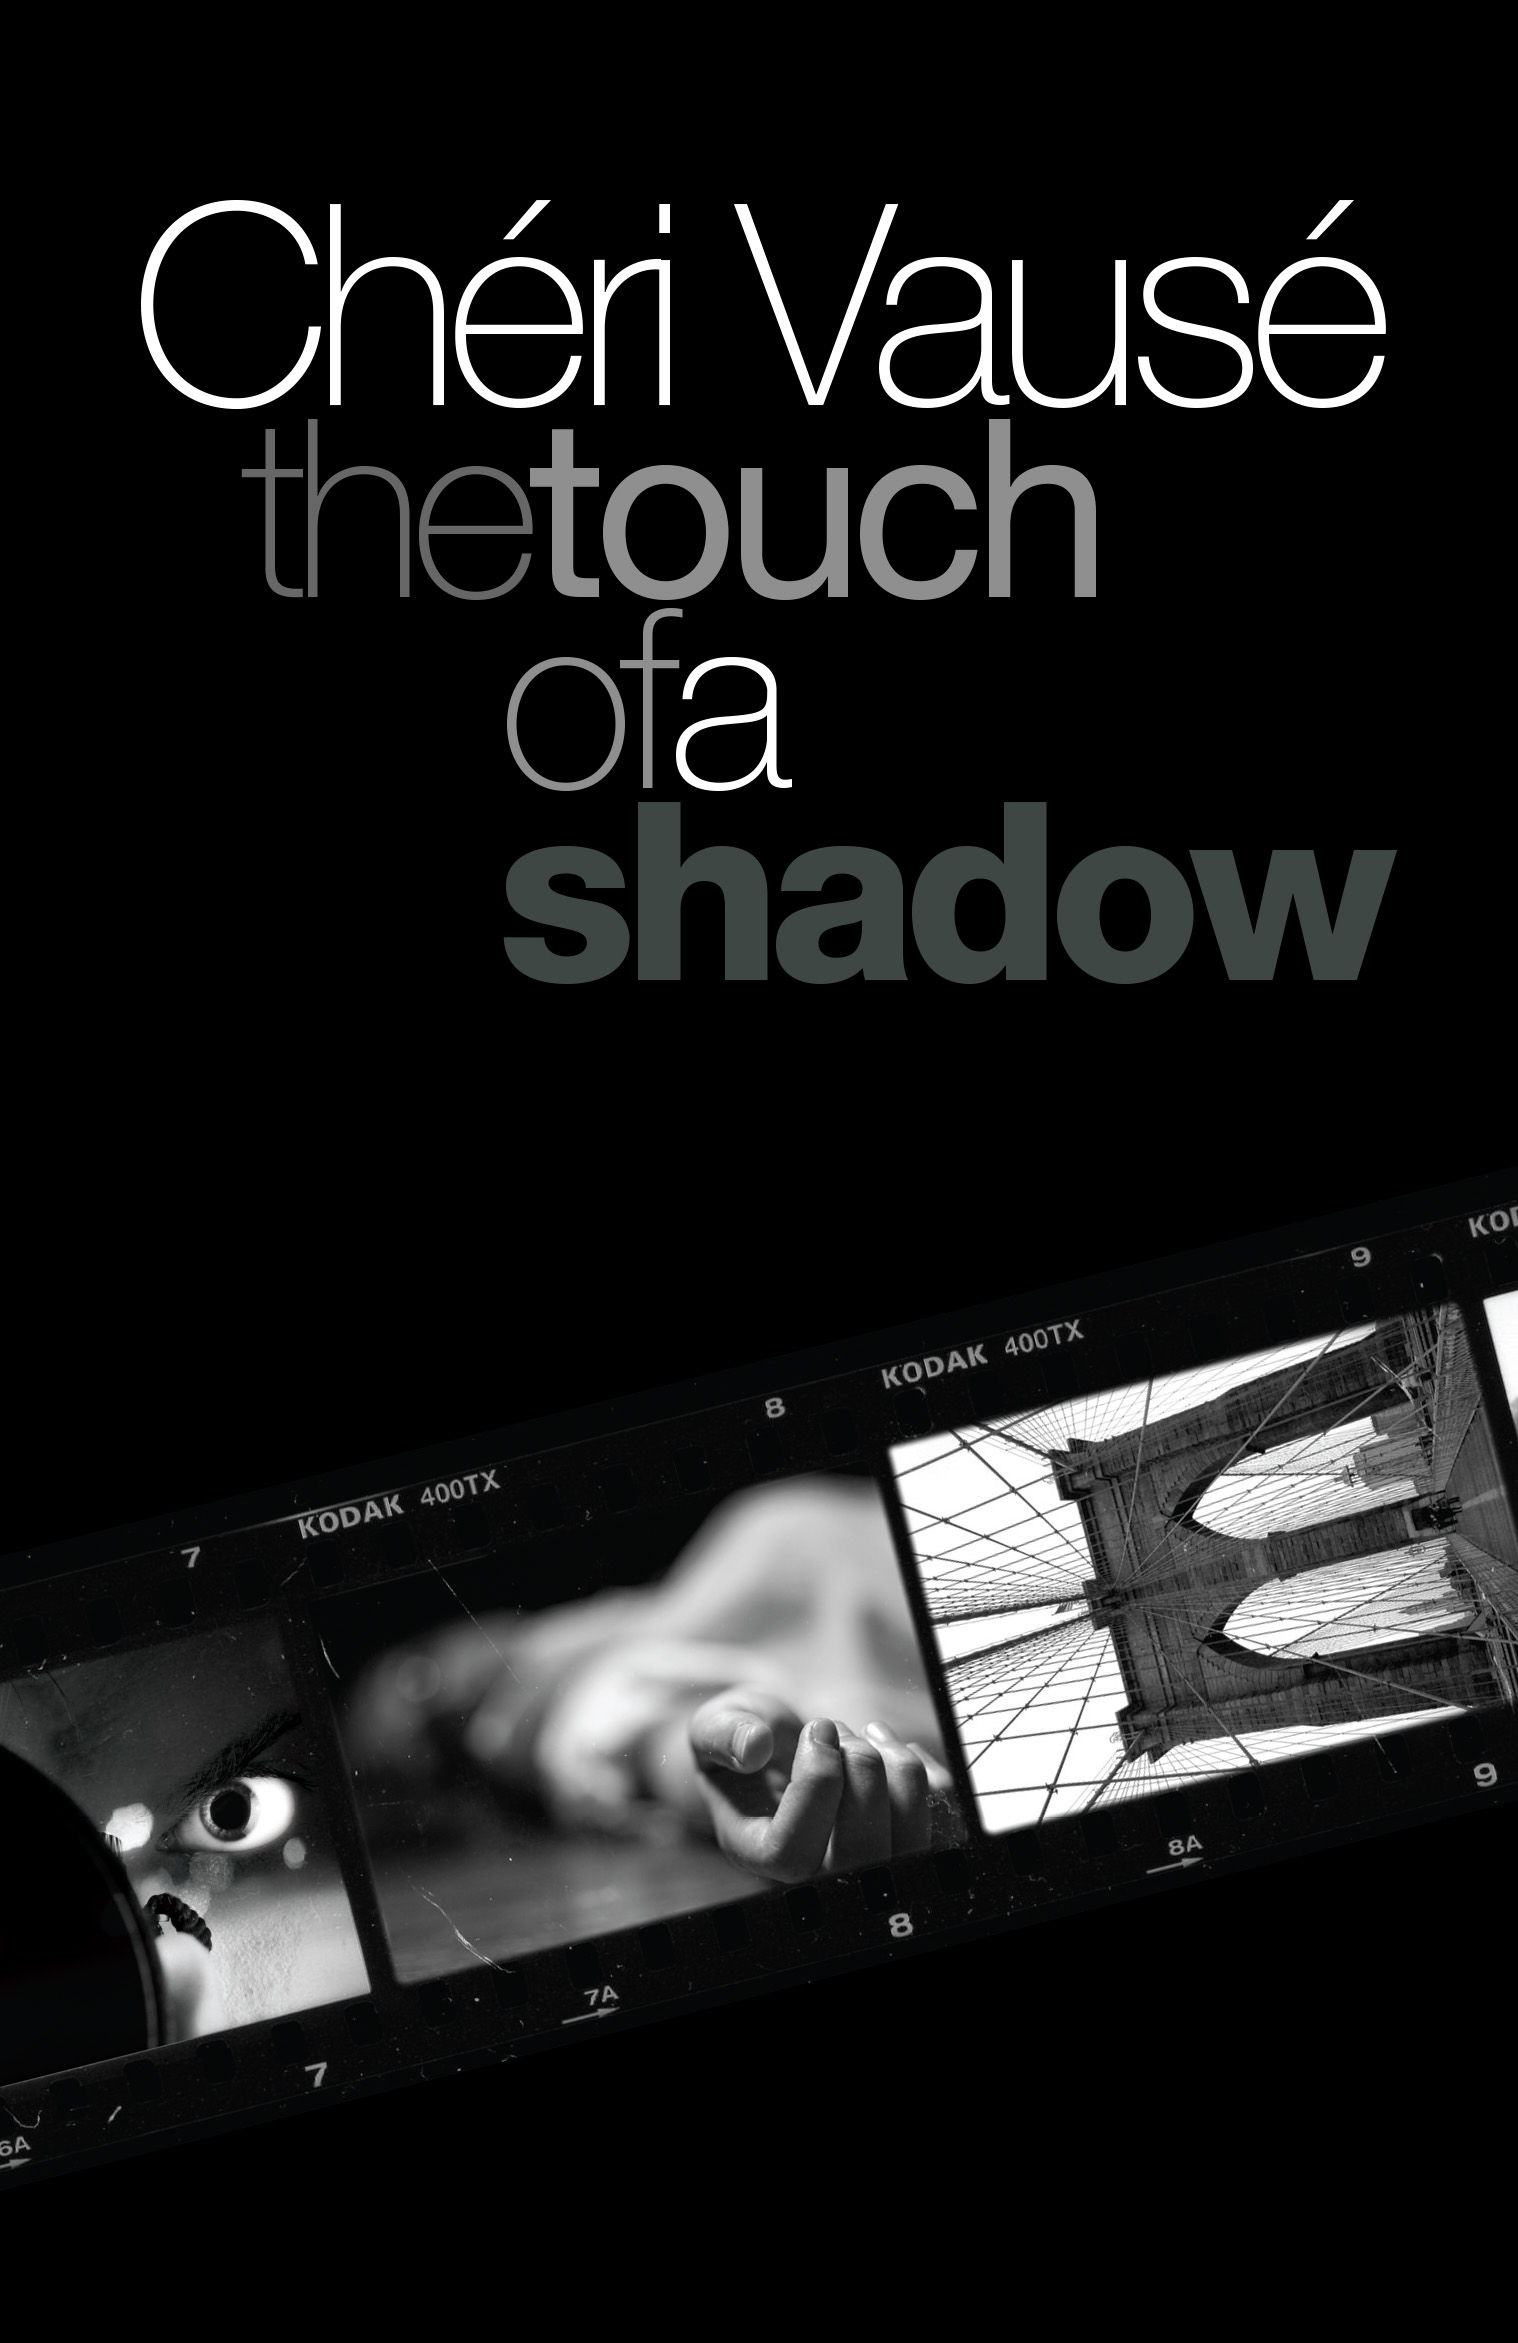 The Touch of a Shadow, by Chéri Vausé, front cover image